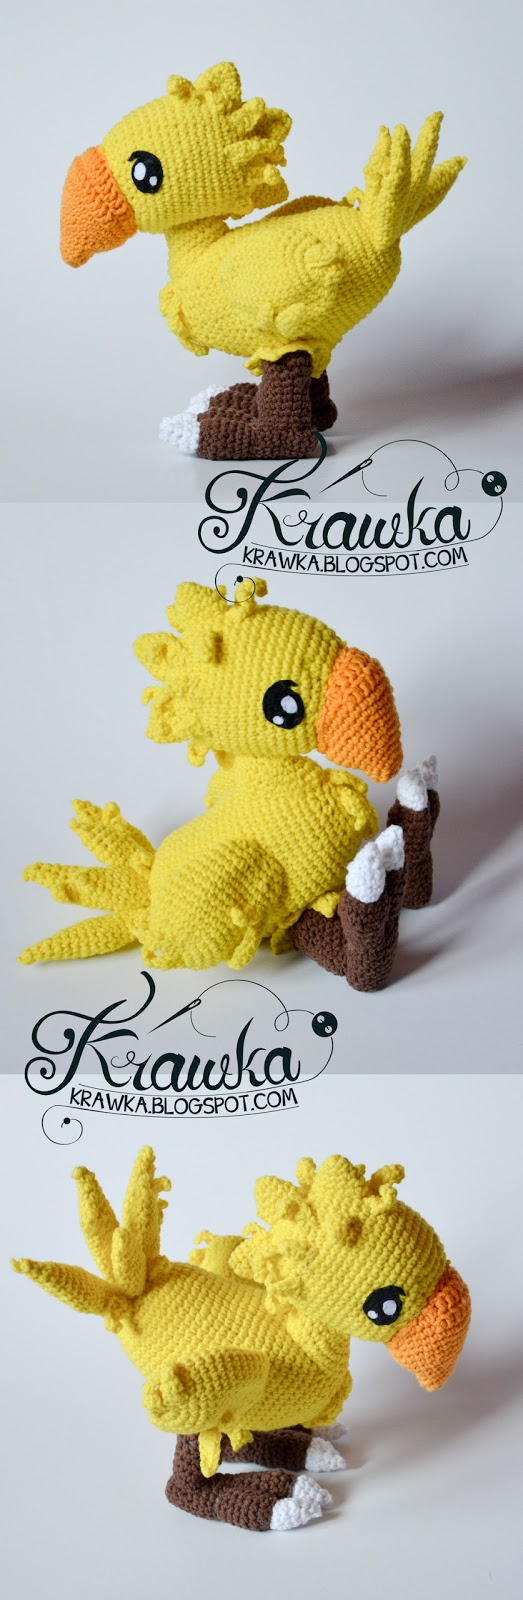 Krawka: Chocobo final fantasy inspired crochet pattern : https://www.etsy.com/listing/478361823/chocobo-final-fantasy-crochet-pattern-by?ref=shop_home_active_1